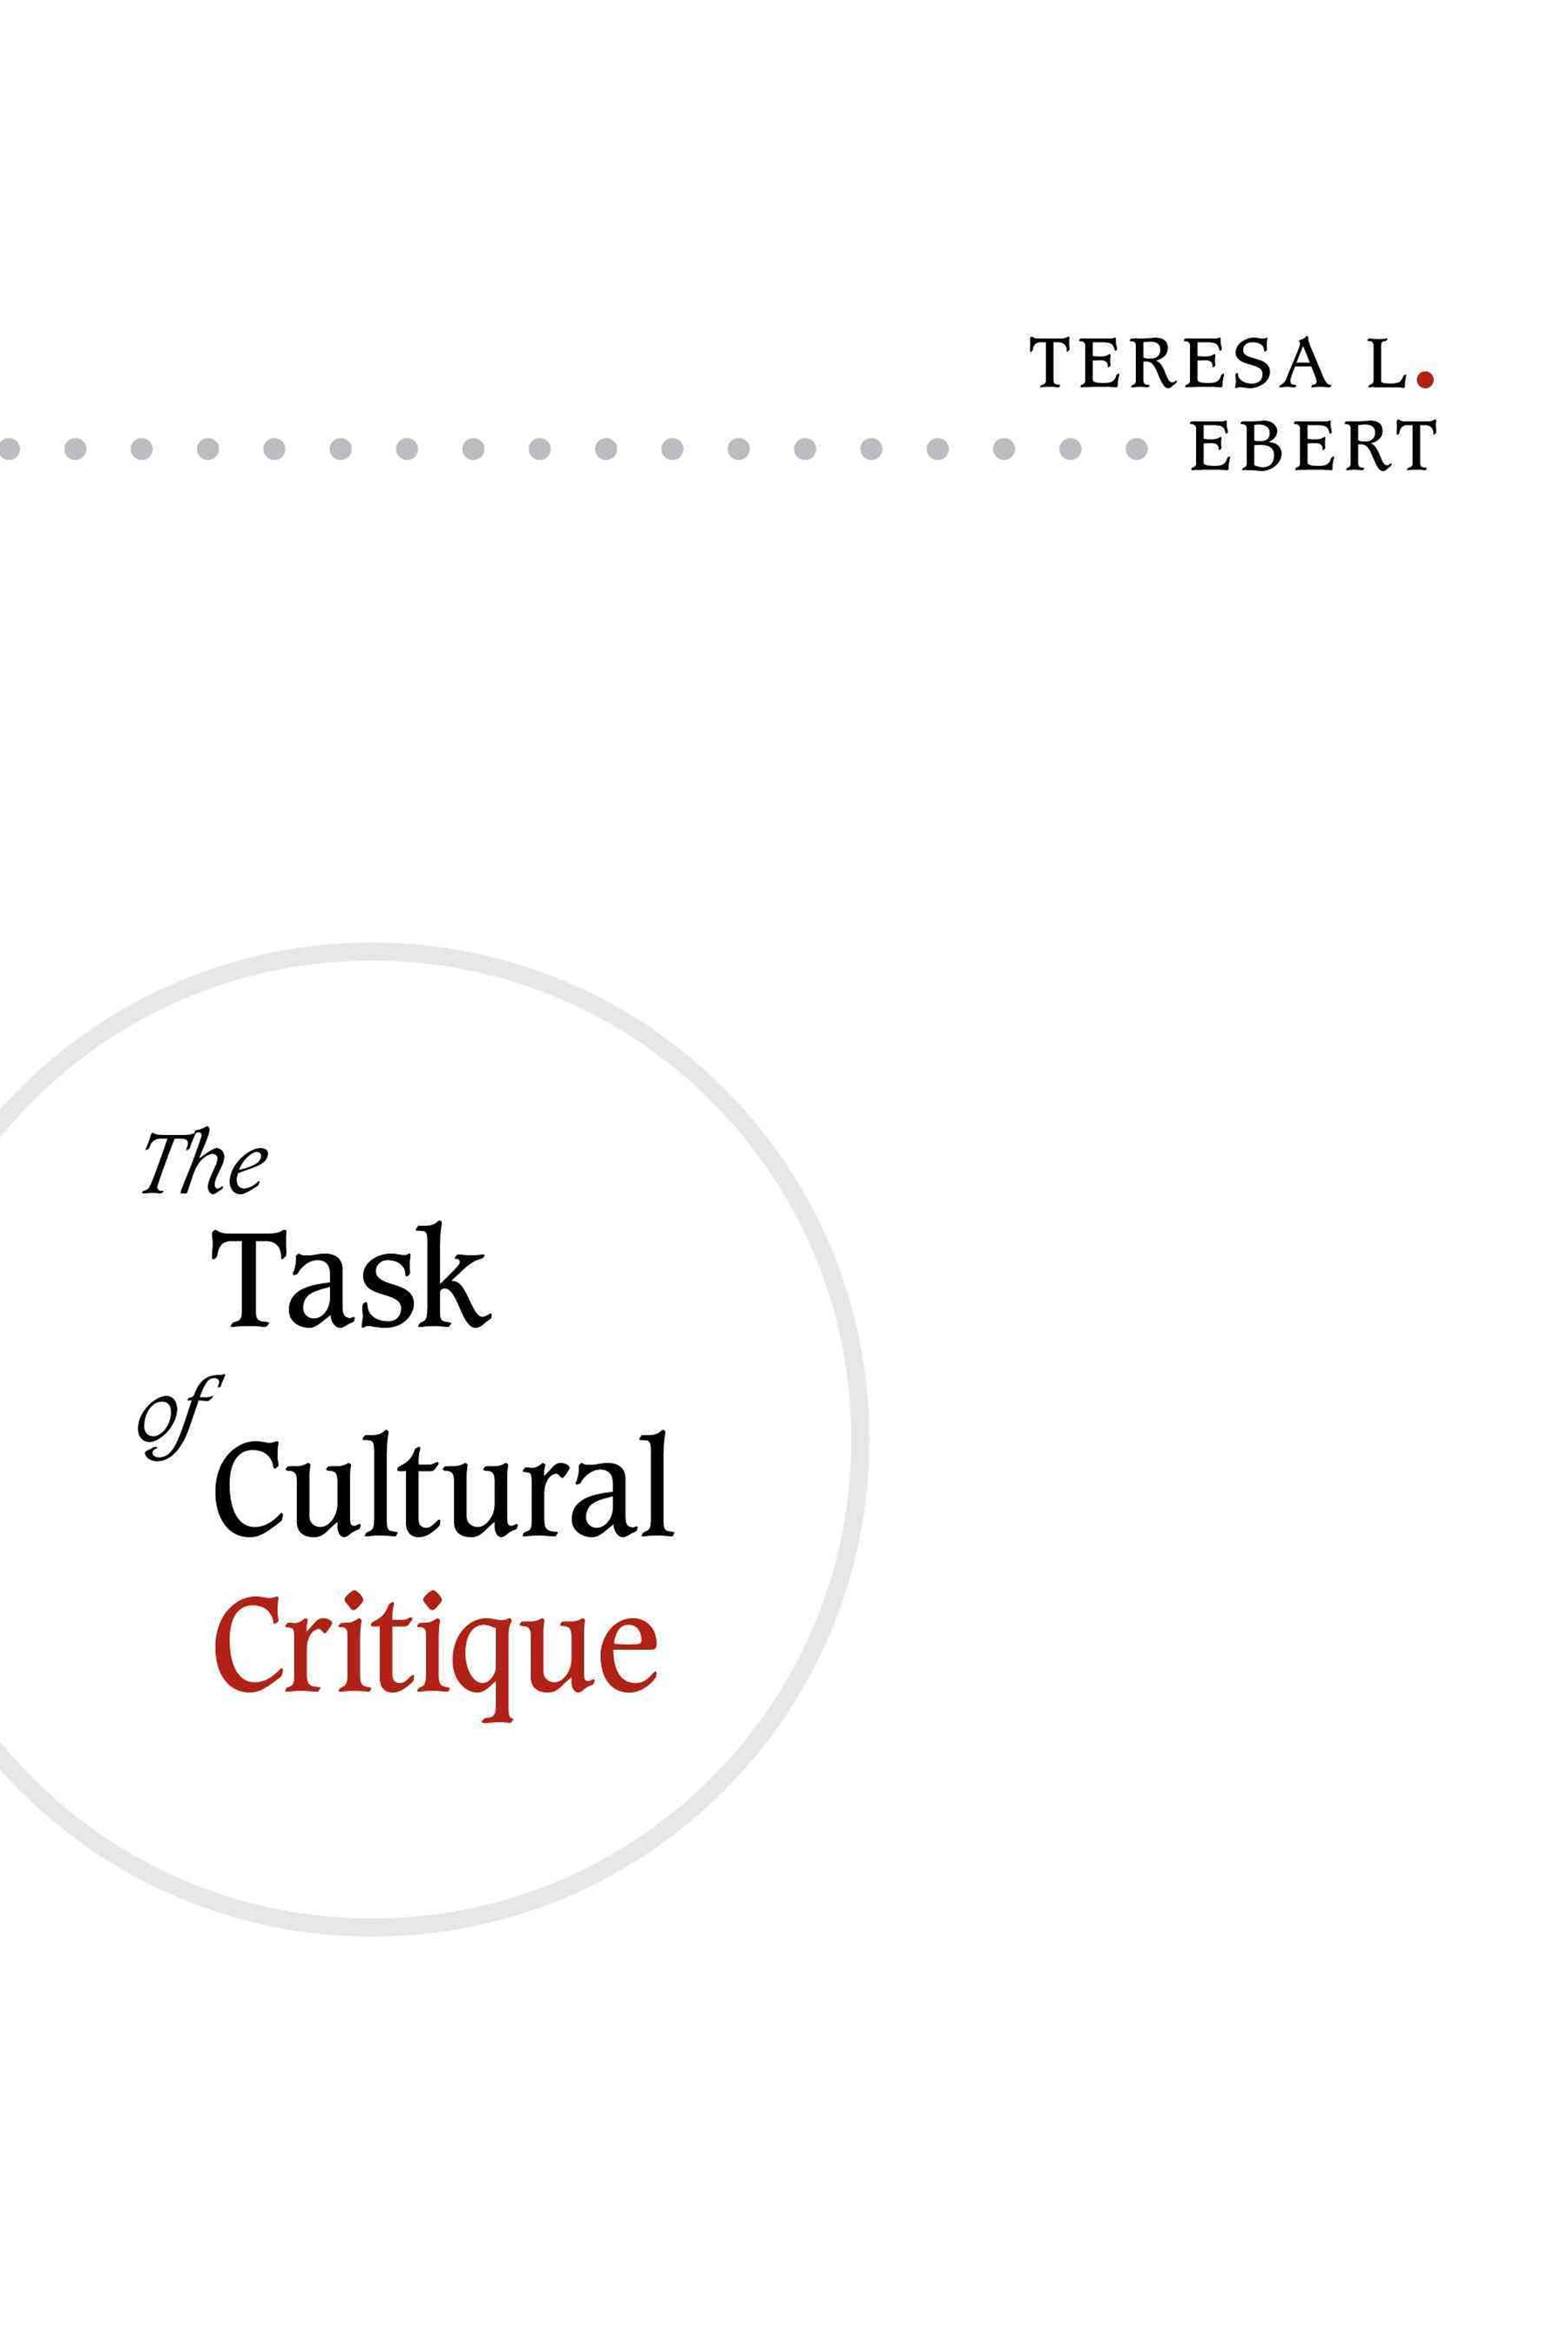 Task of Cultural Critique